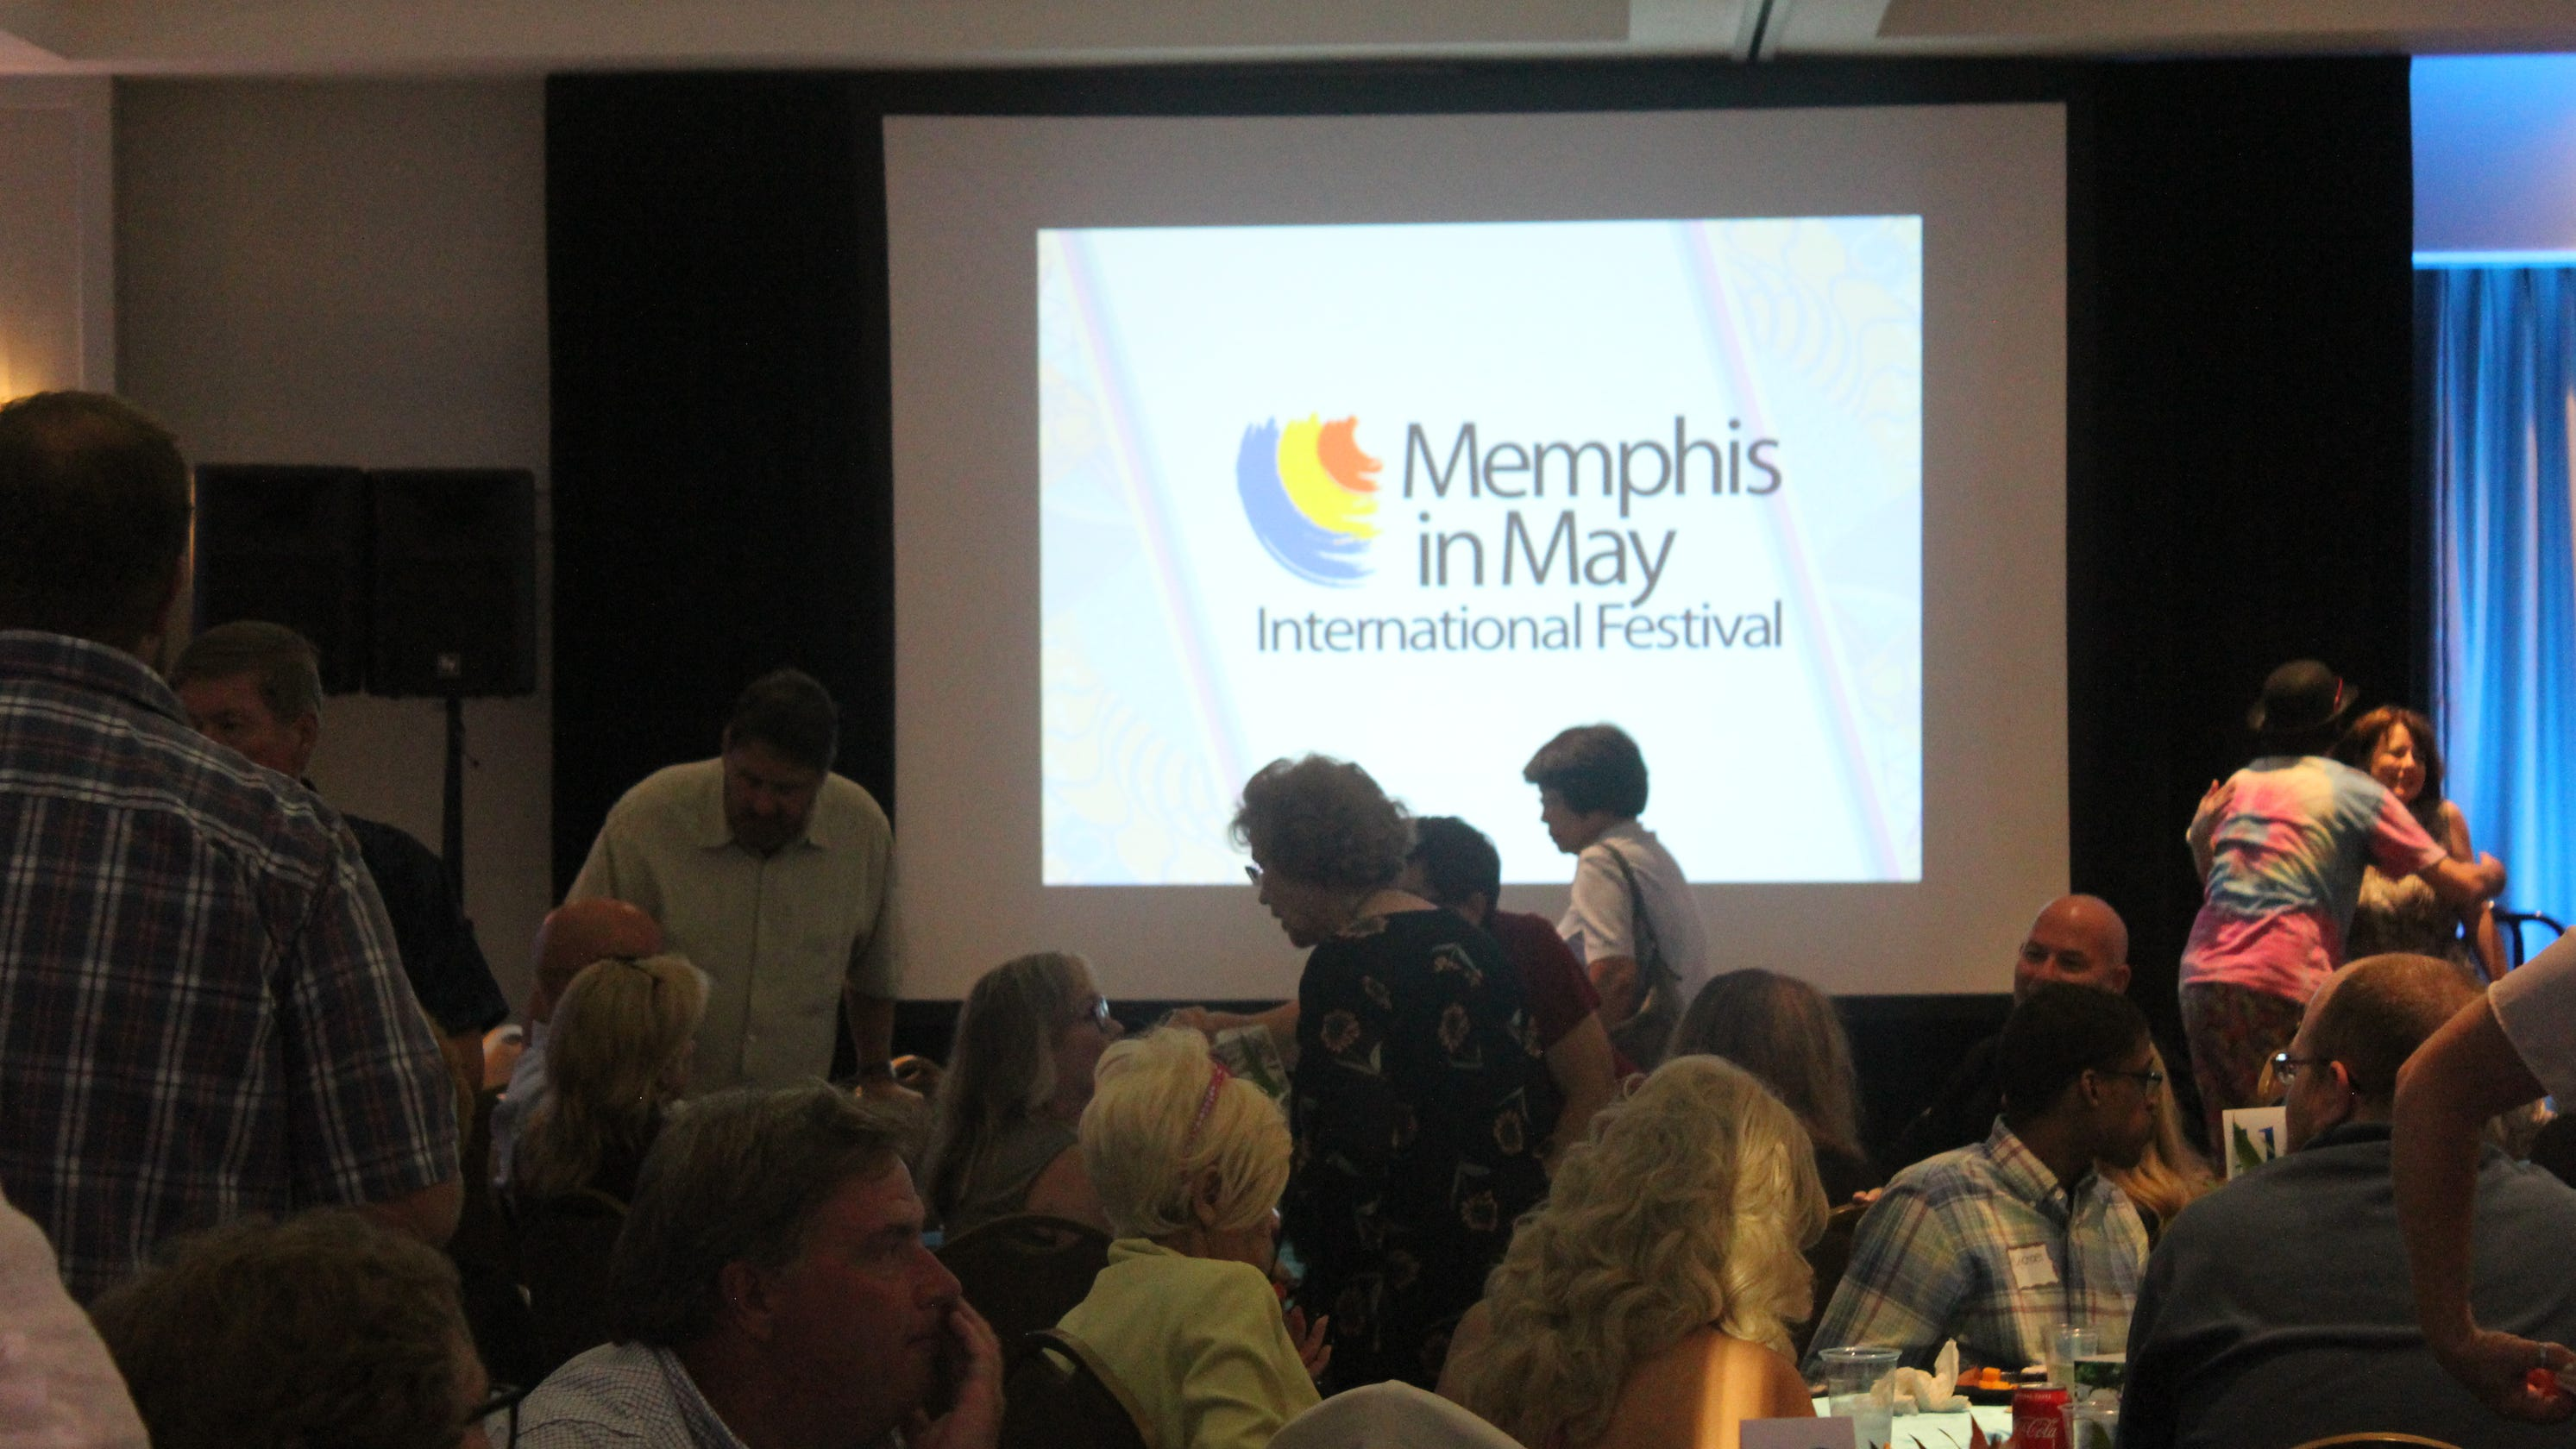 Memphis Barbecue Festival 2020 Ghana announced as honored country for Memphis in May 2020